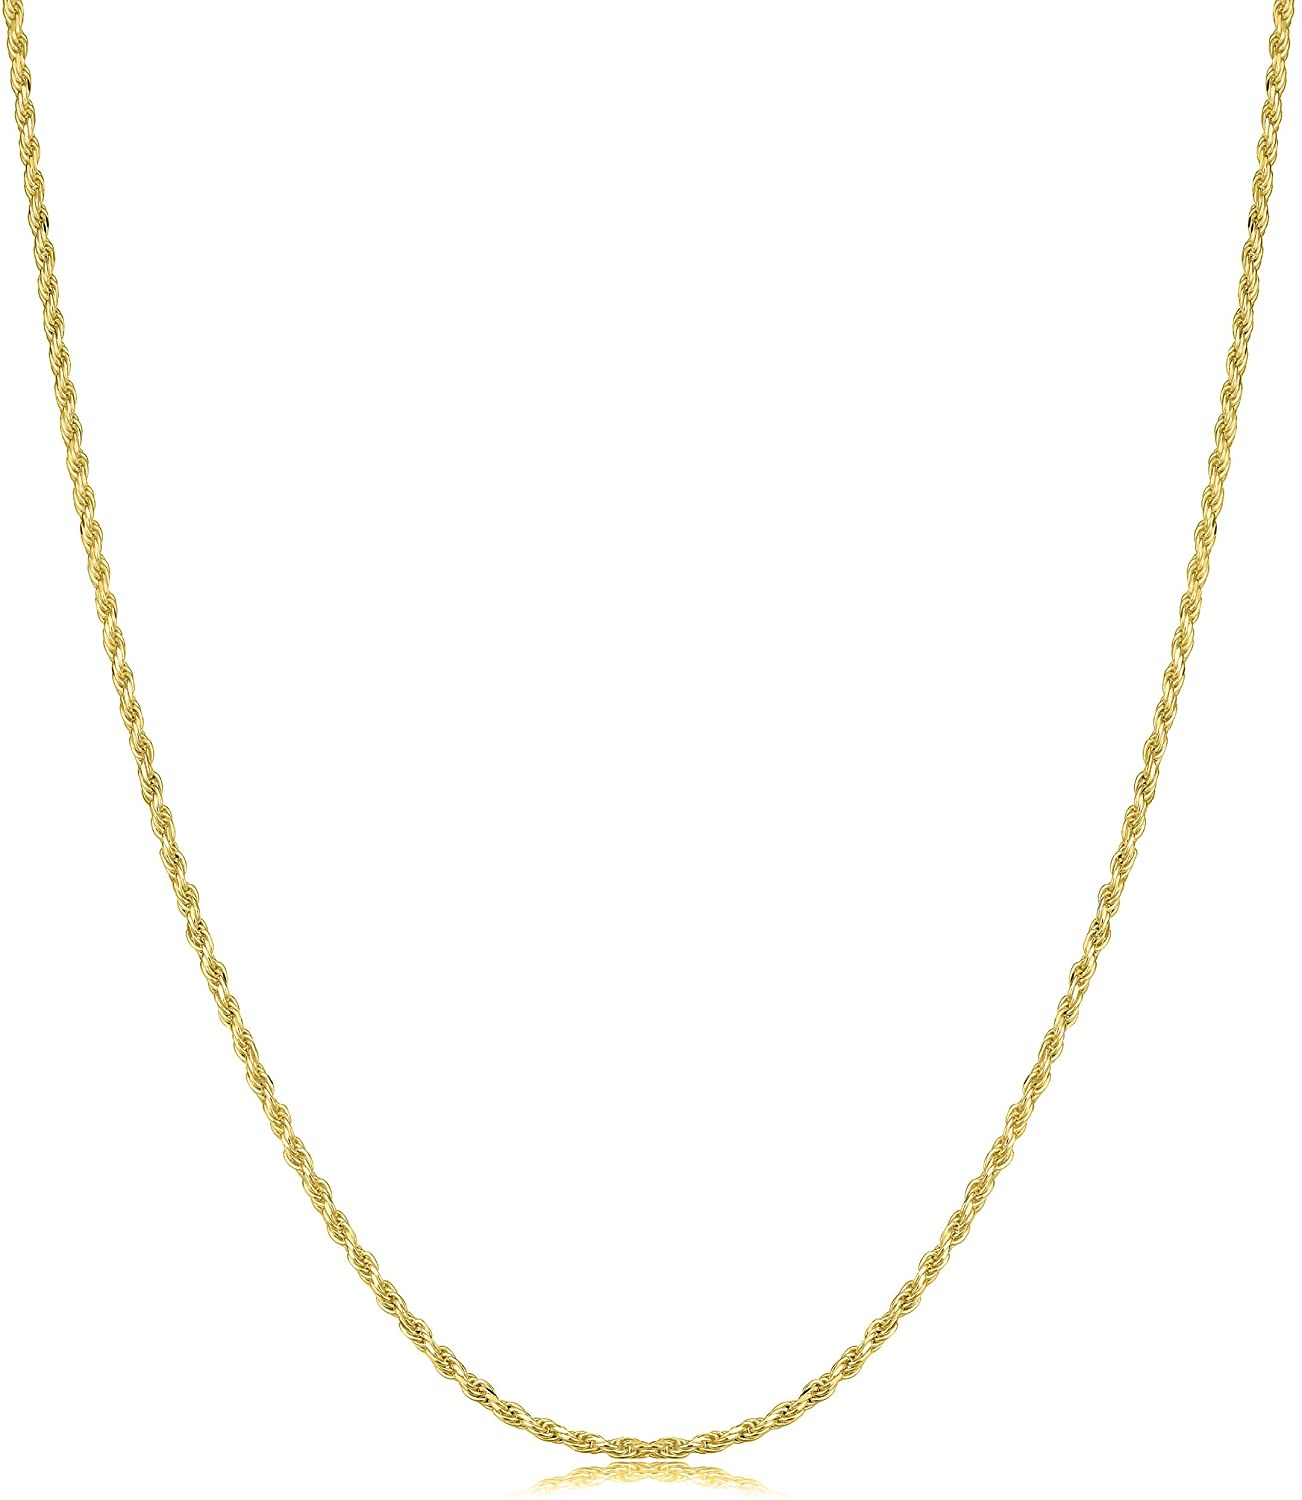 18K Gold 1.5MM Diamond Cut Rope Chain Necklace, 18K Gold Rope Chain, 18K Gold Necklaces,18K Gold Chain Gold Dainty Necklace, Real 18K Gold Chain, 16-30